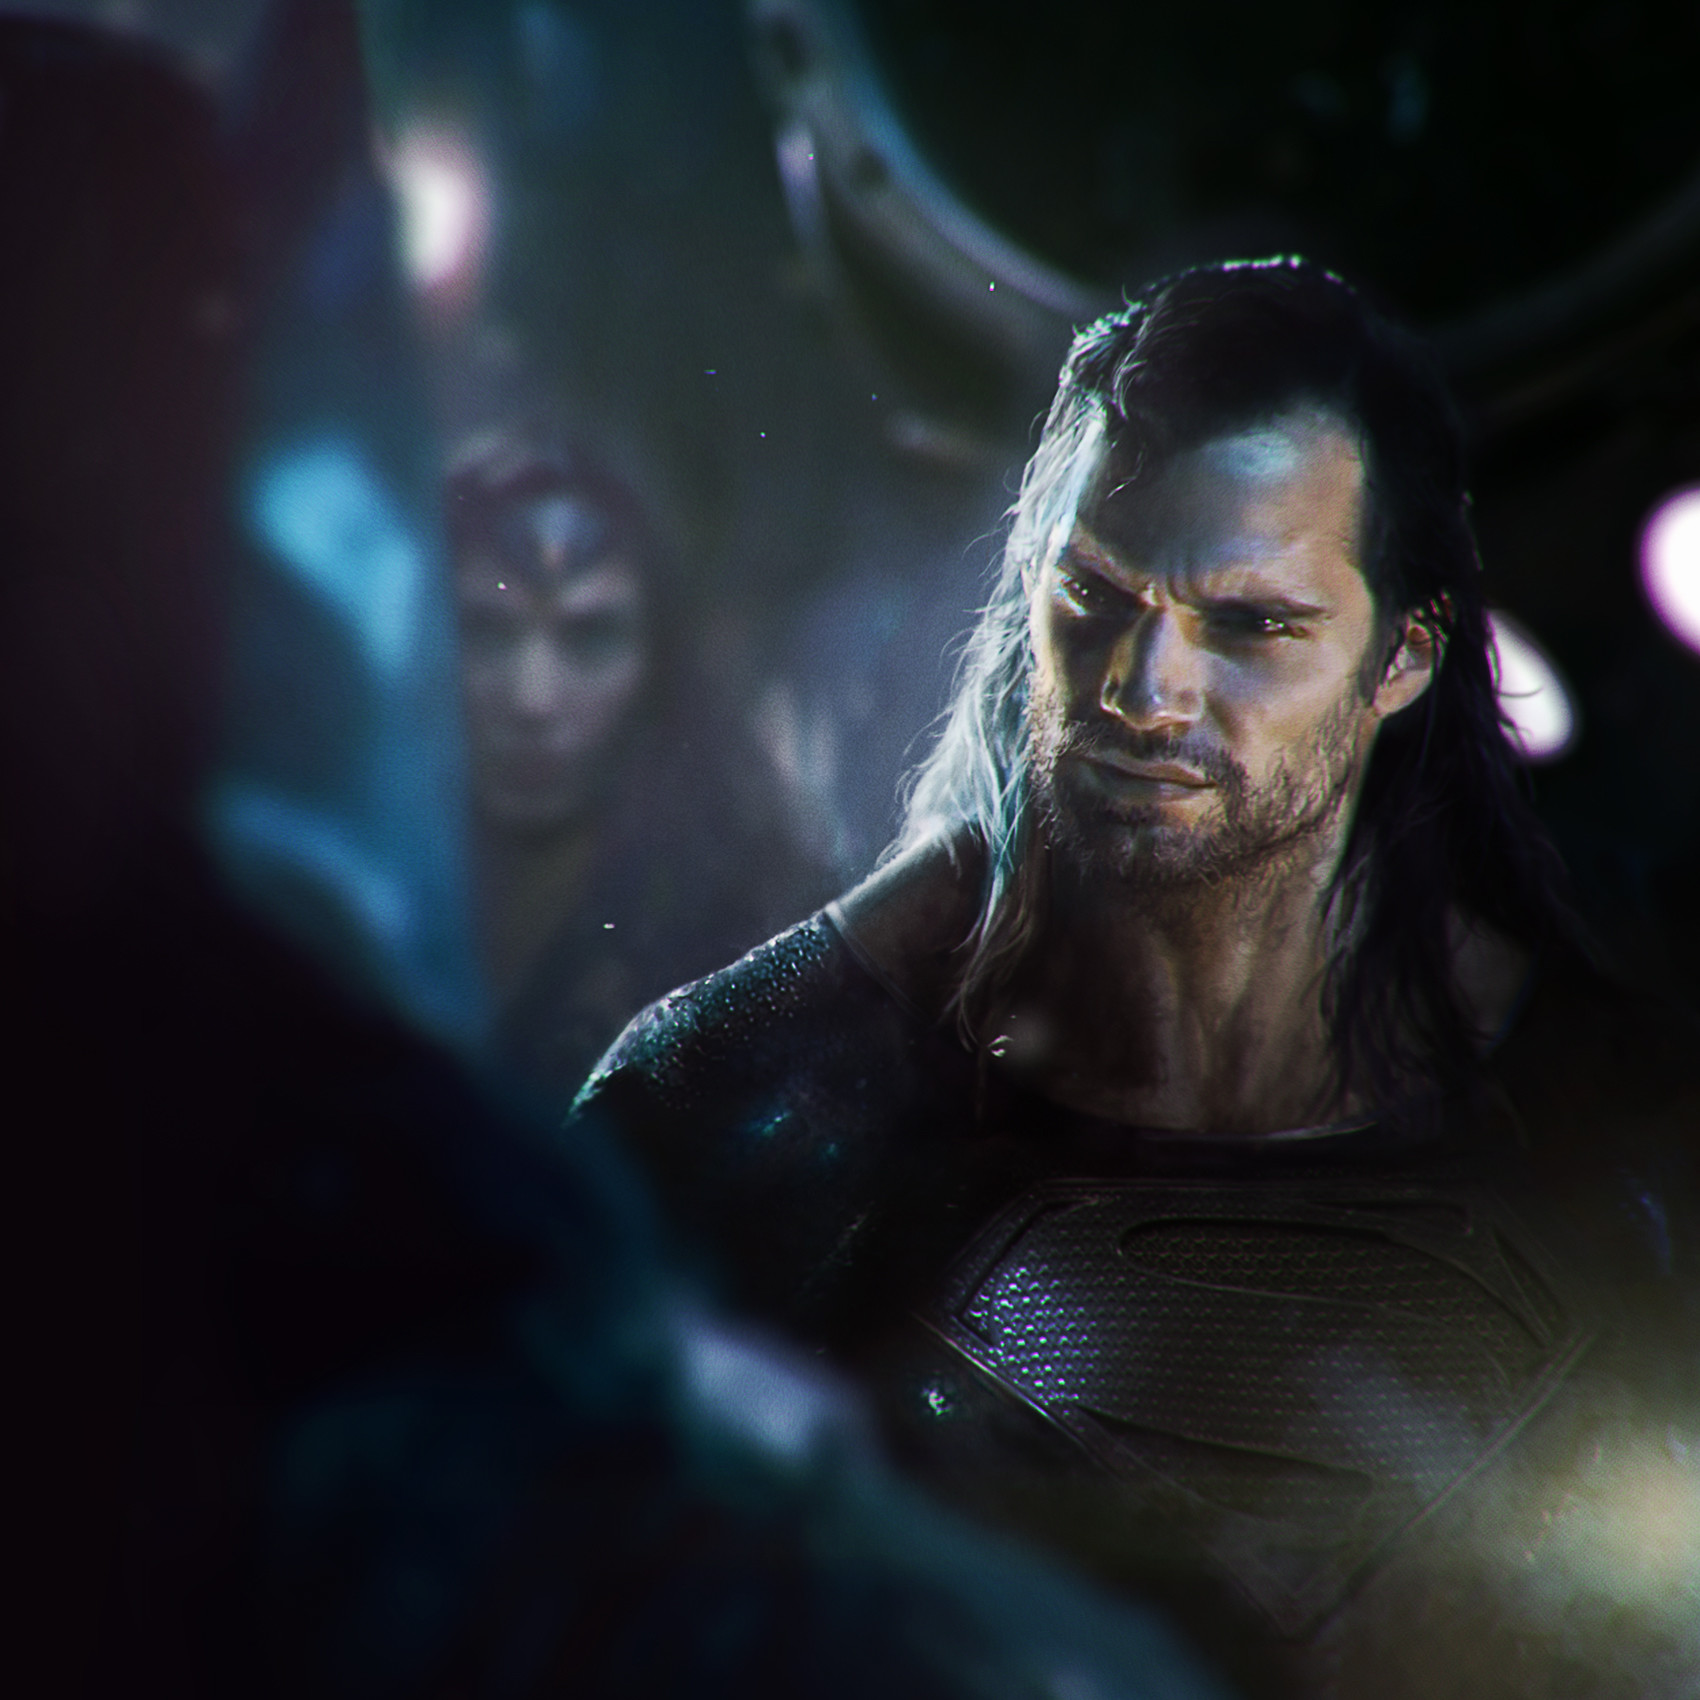 Download The Image Of The Evil Superman With Black Suit: Concept Art Shows How Superman Might Look In The Justice